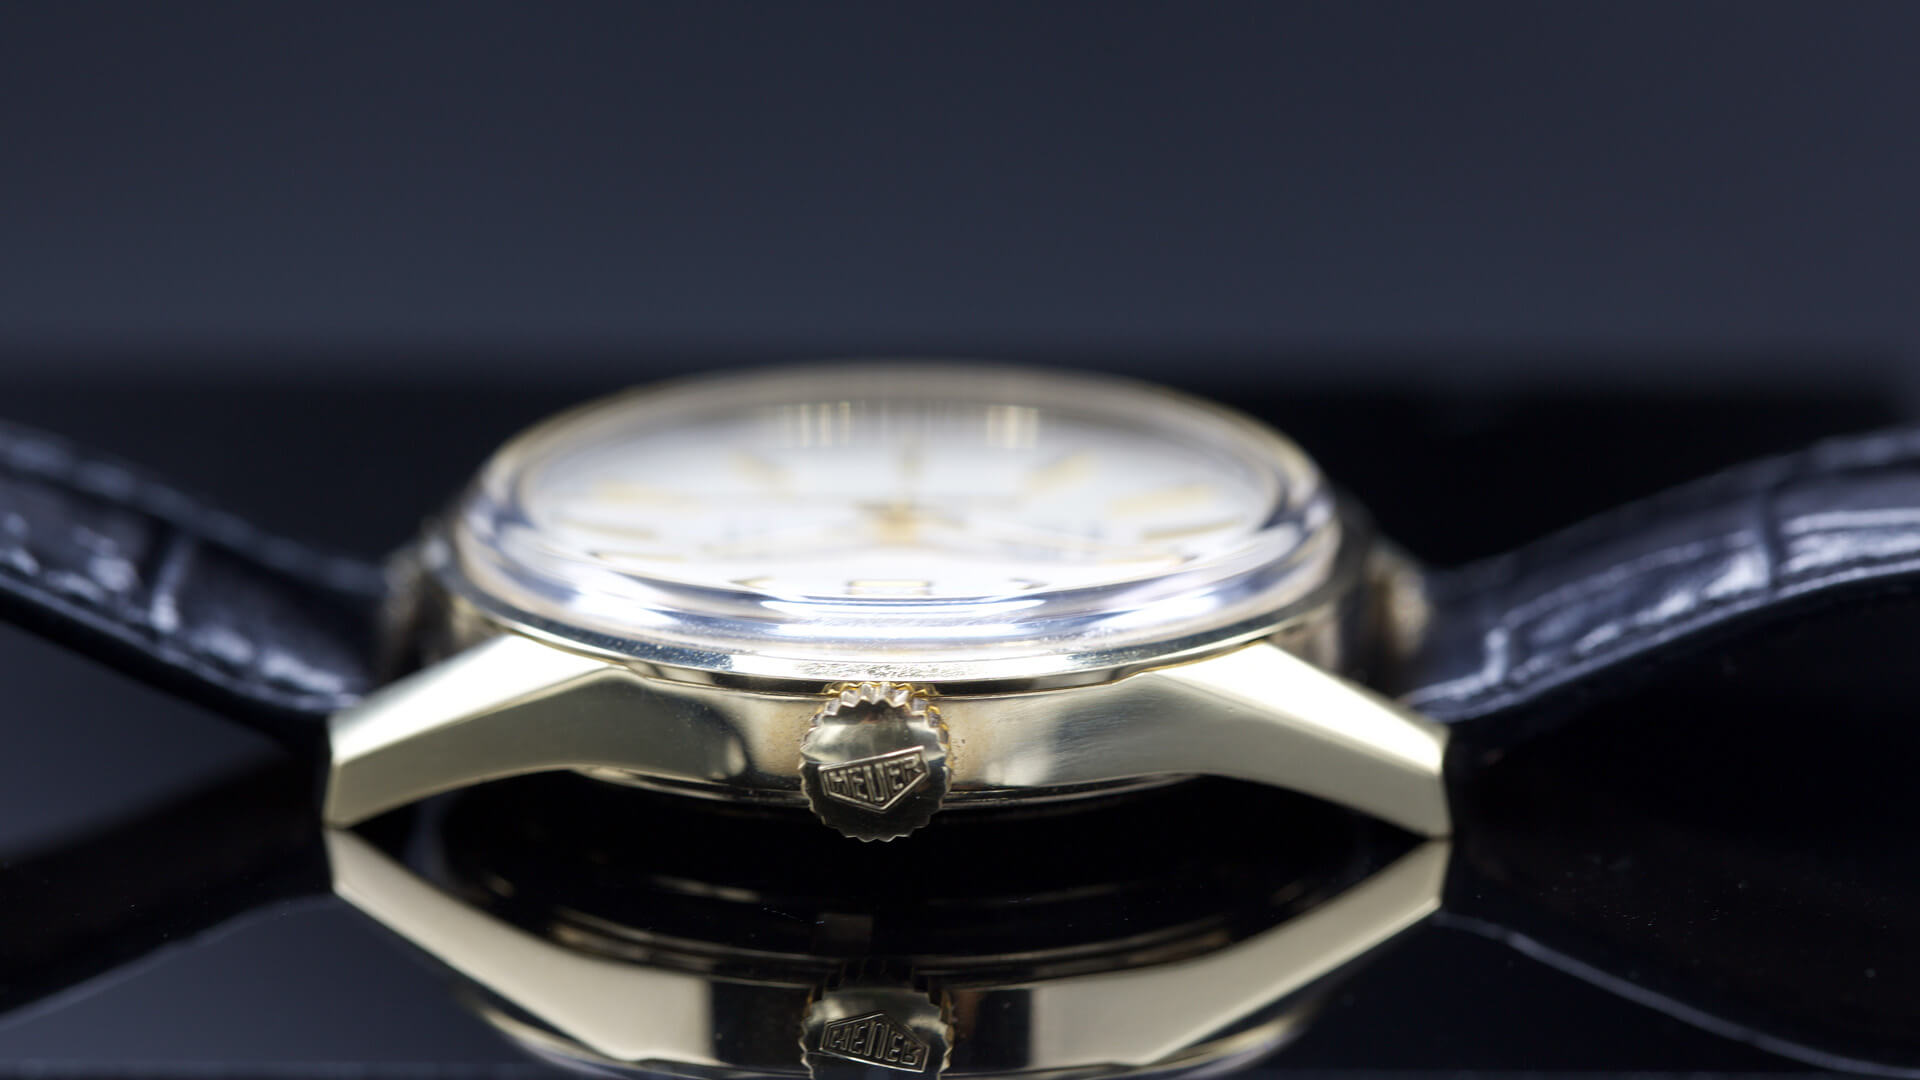 TAG_Heuer_CARRERA_100M_Calibre_7_Glassbox_39MM_caseband - ESCAPEMENT MAGAZINE - watch reviews by Angus Davies